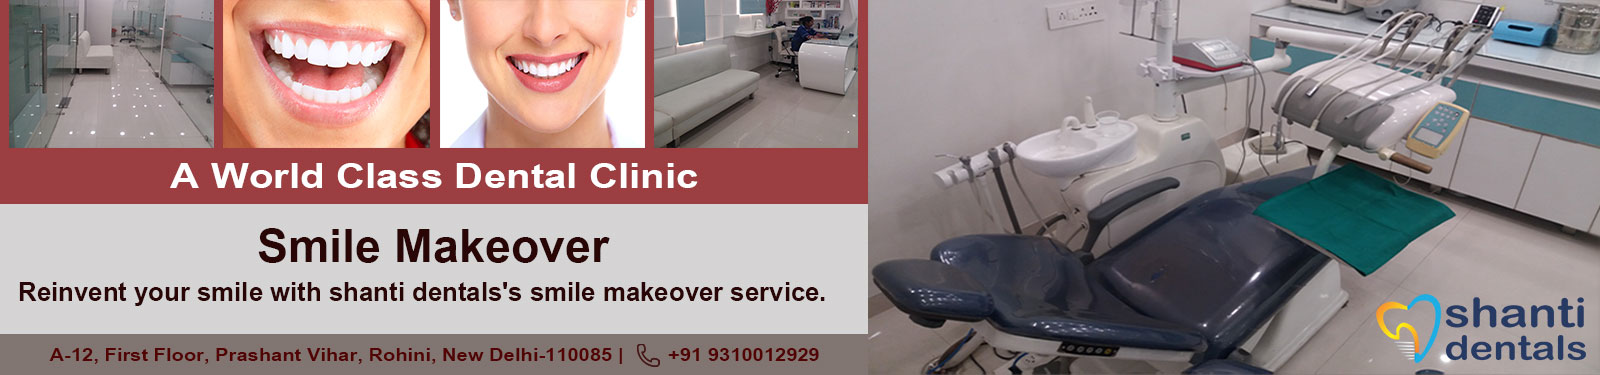 Smile Makeover Care in Rohini Delhi by Shanti Dentals